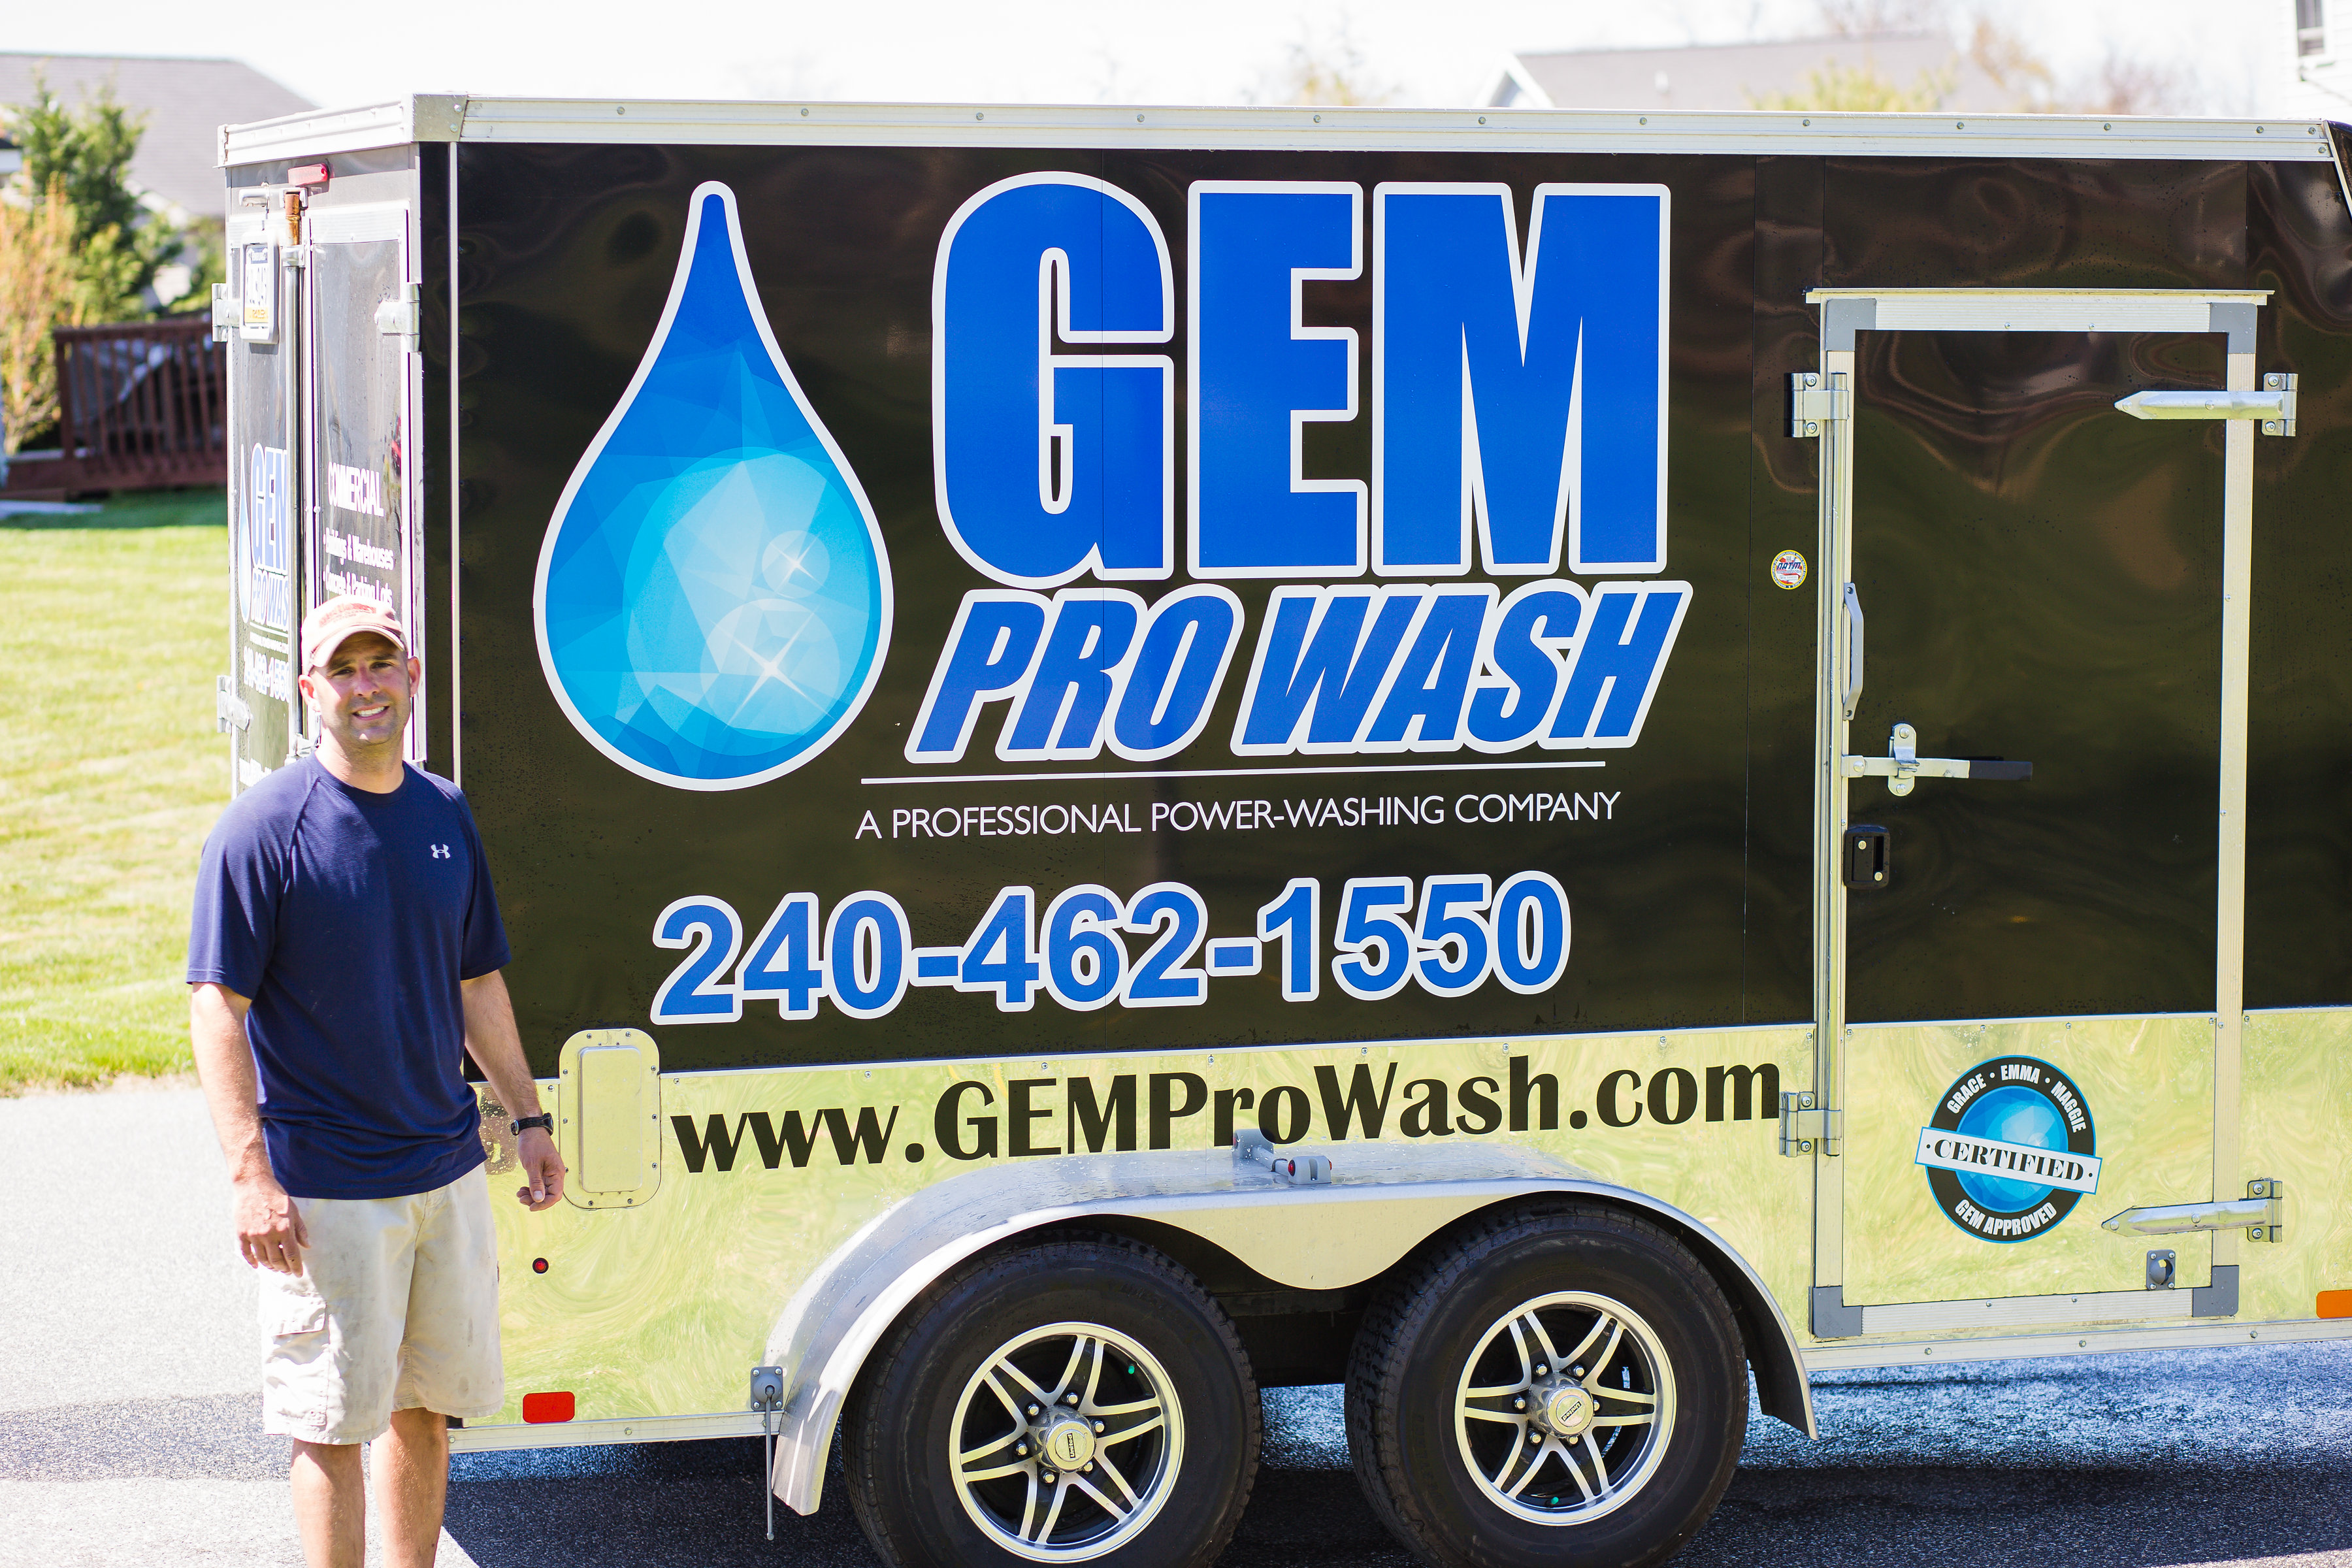 Gem Pro Wash | Power Washing Contractor in Hagerstown MD